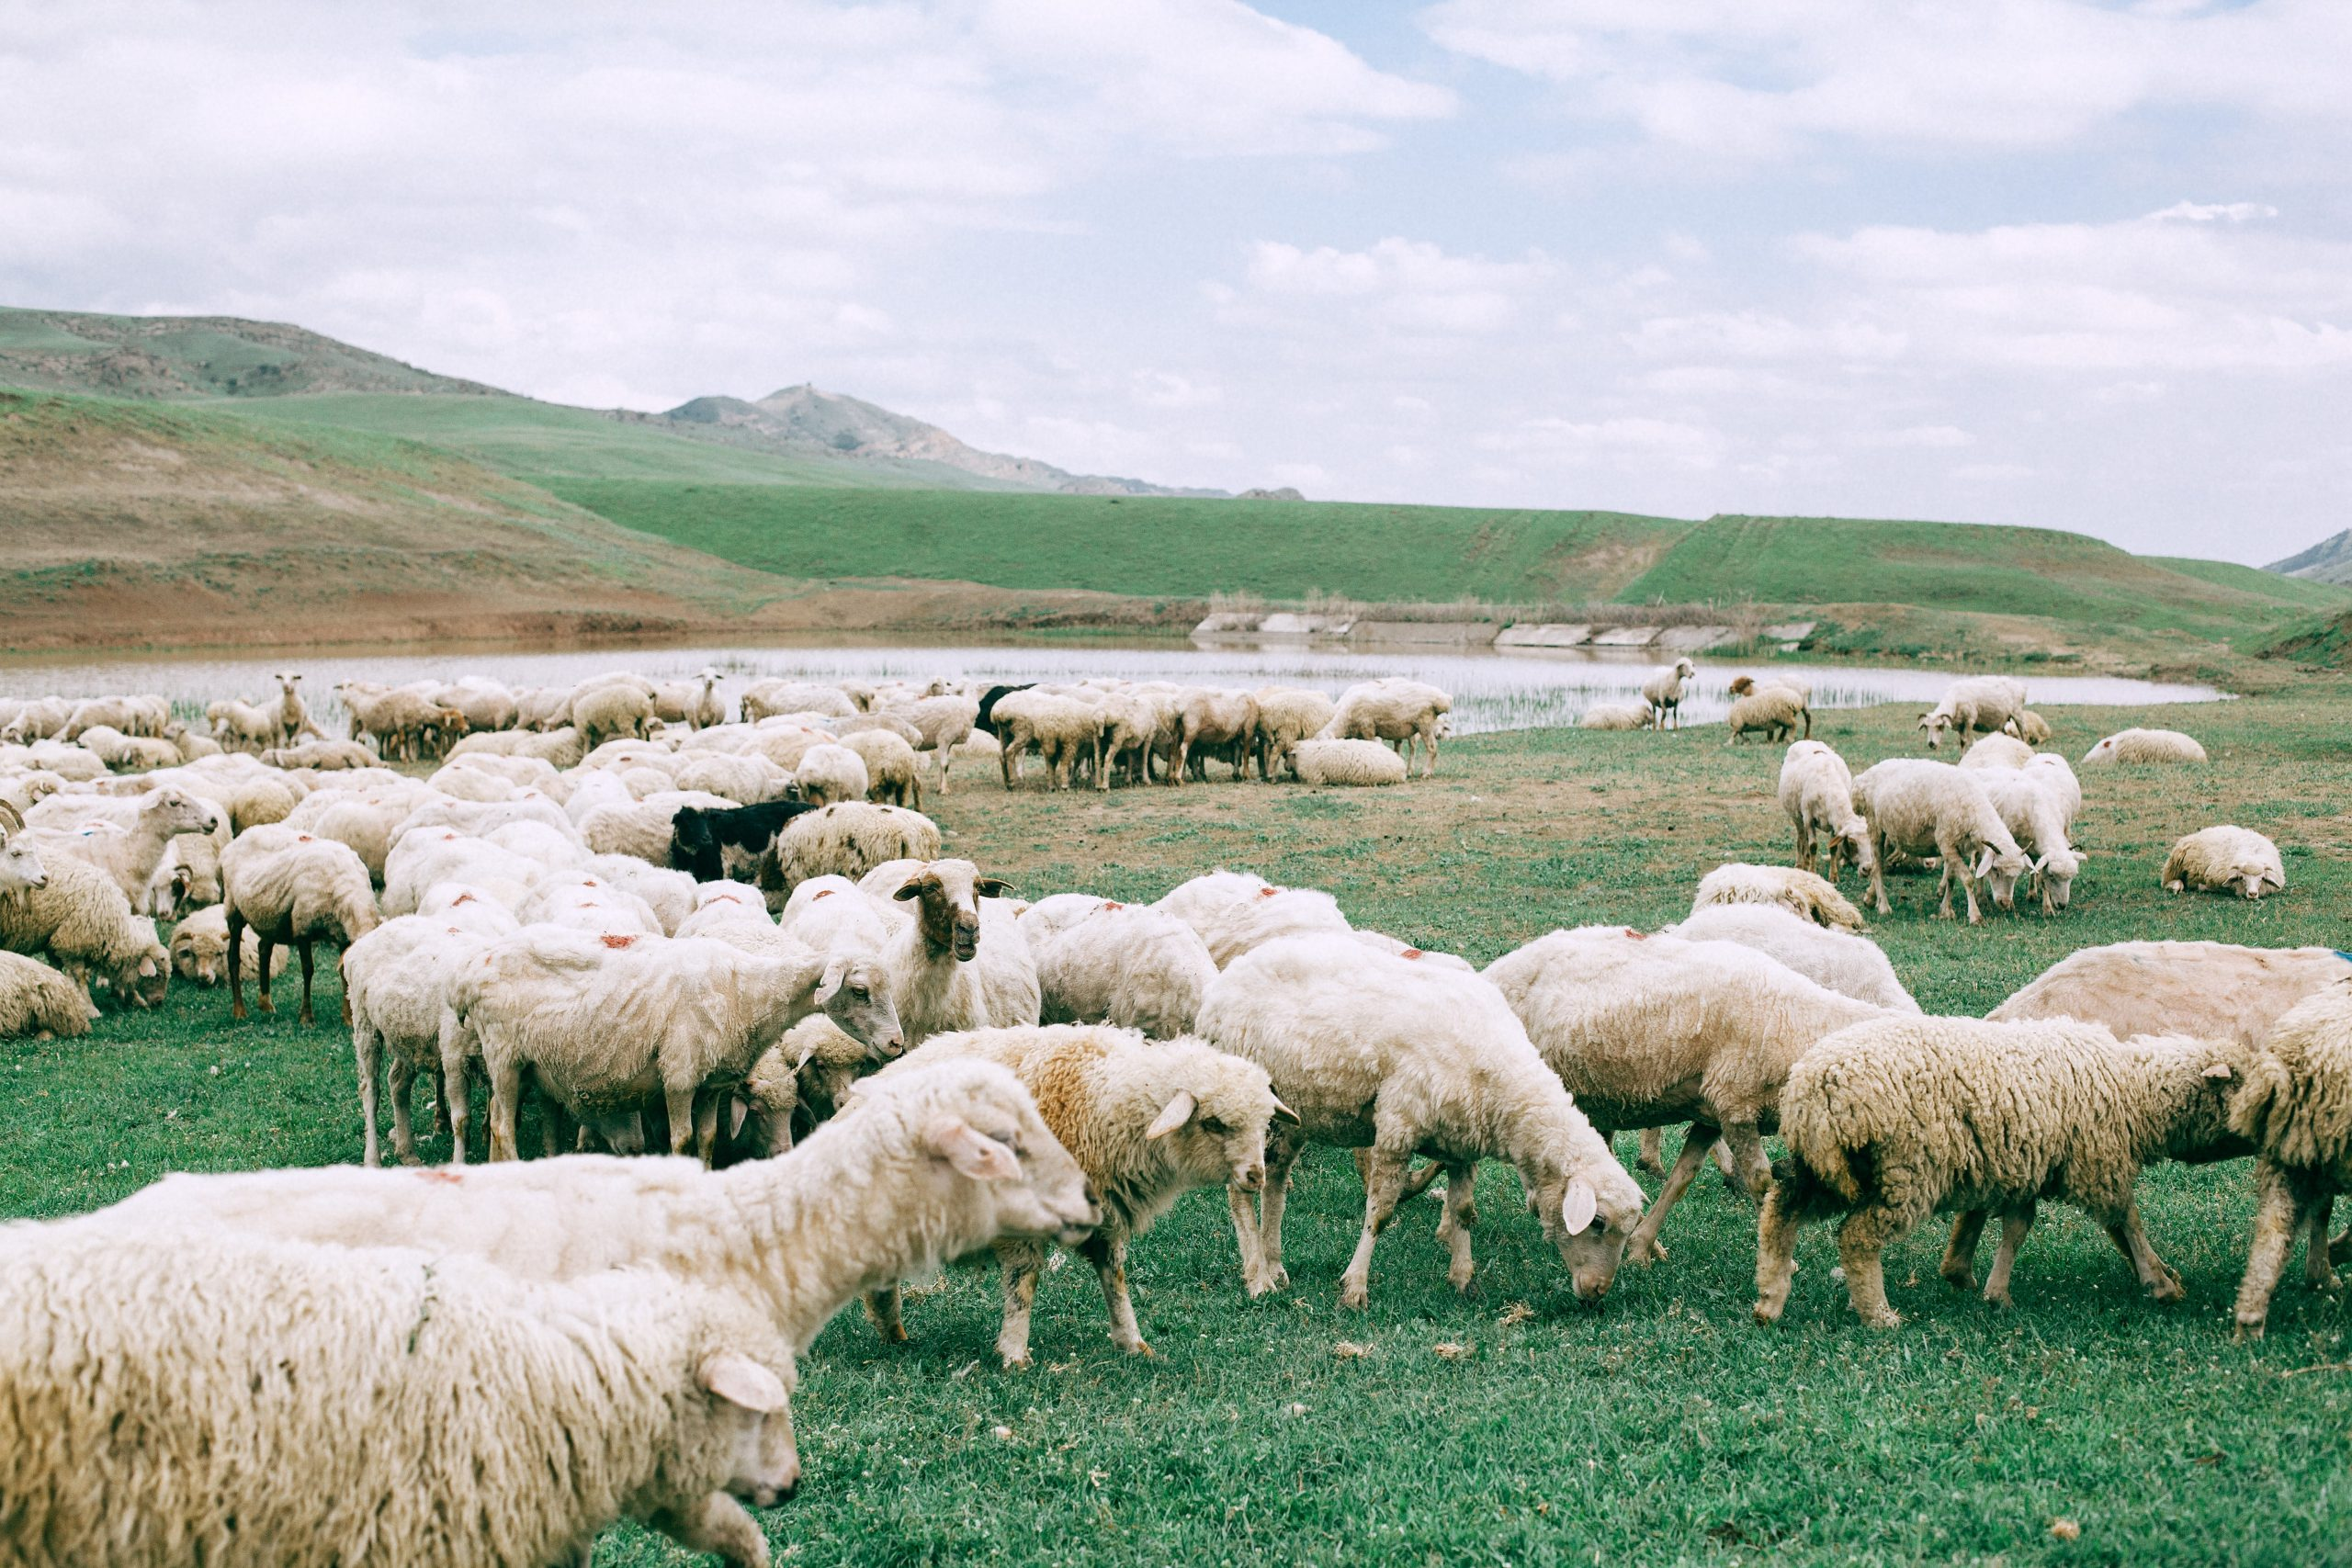 Sheep grazing in a field like Sheeple waiting to be told what to do next.